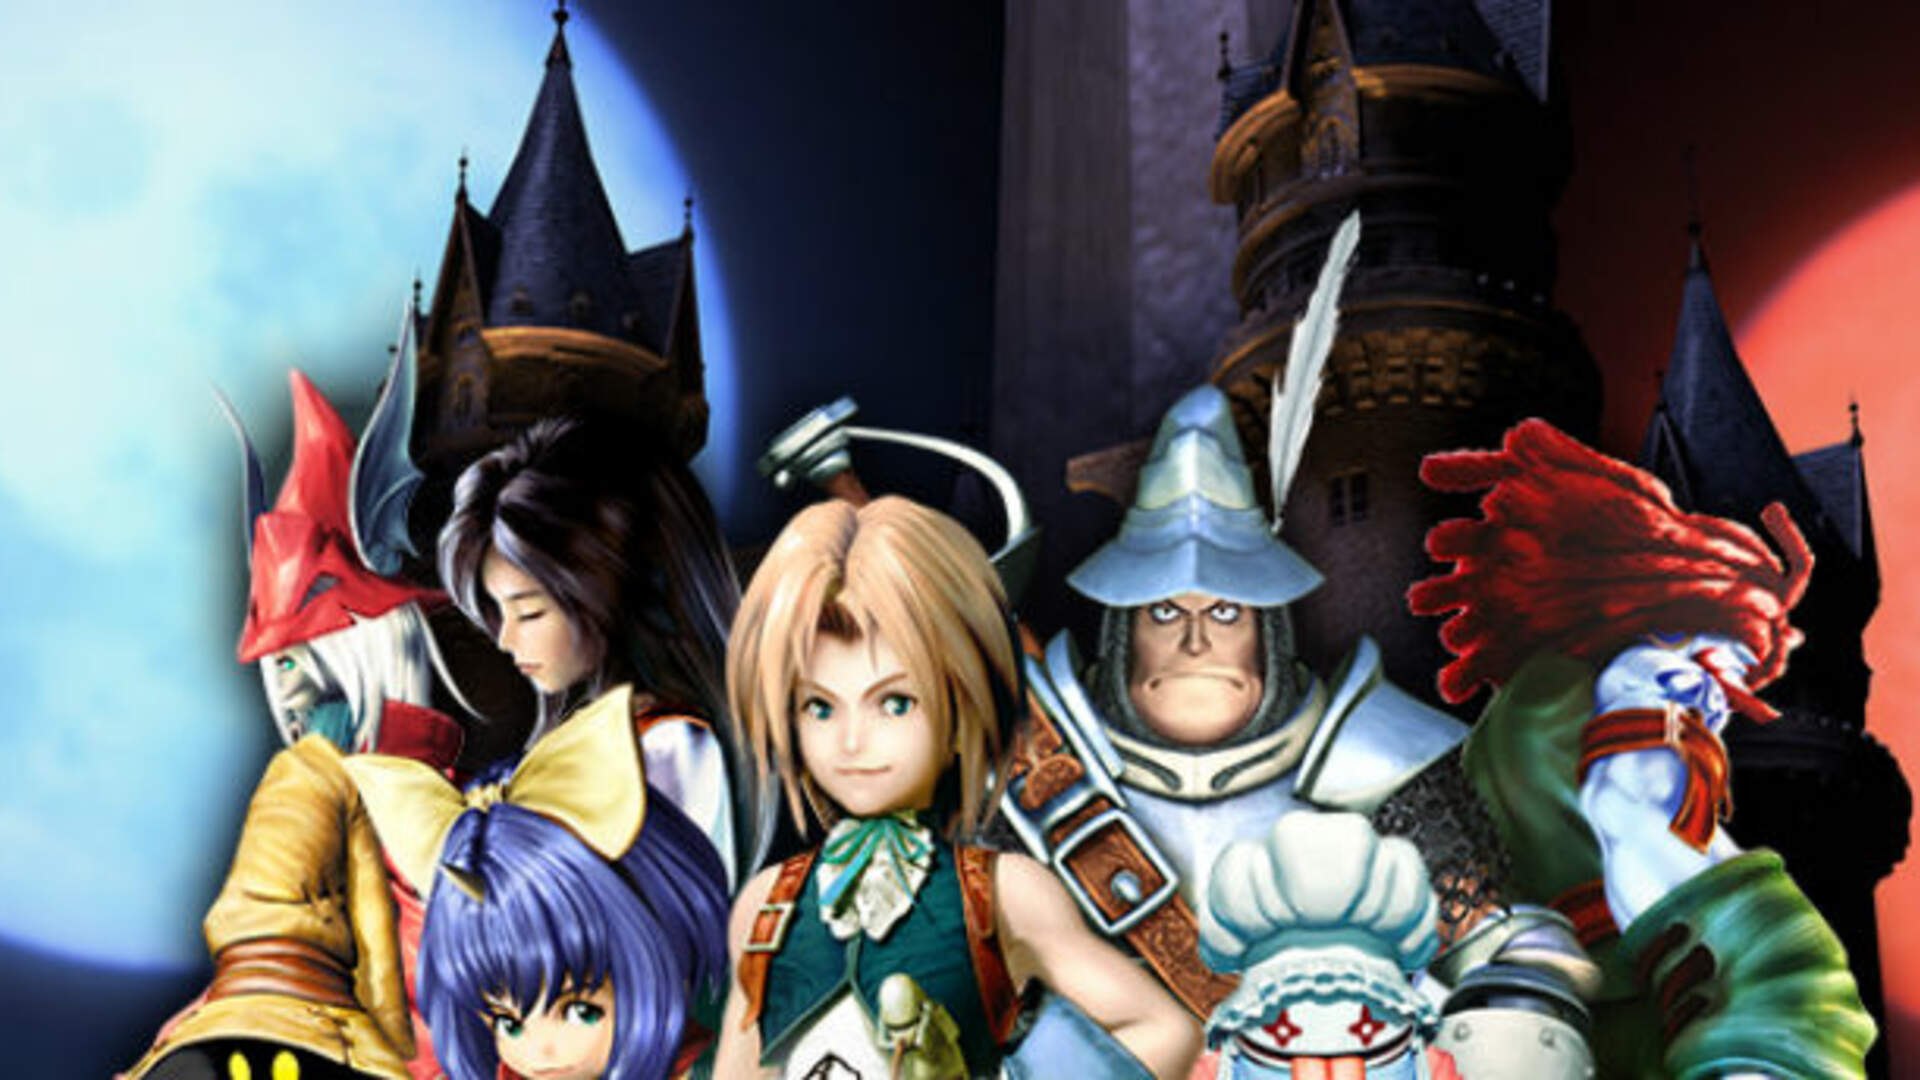 The Written Final Fantasy IX Report Part 3: Giant Trees Don't Last Long in Square's Universe